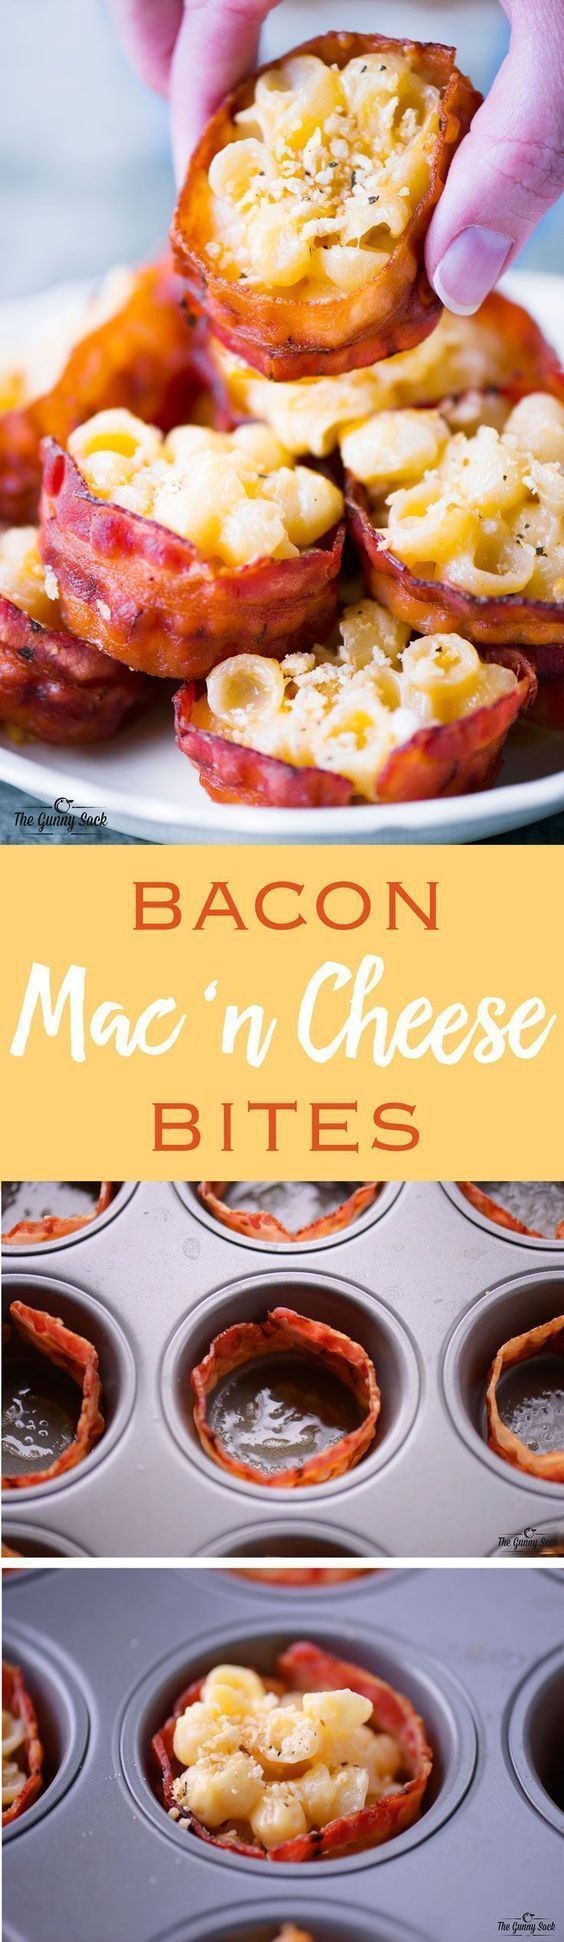 Bacon Mac and Cheese Bites - The Gunny Sack